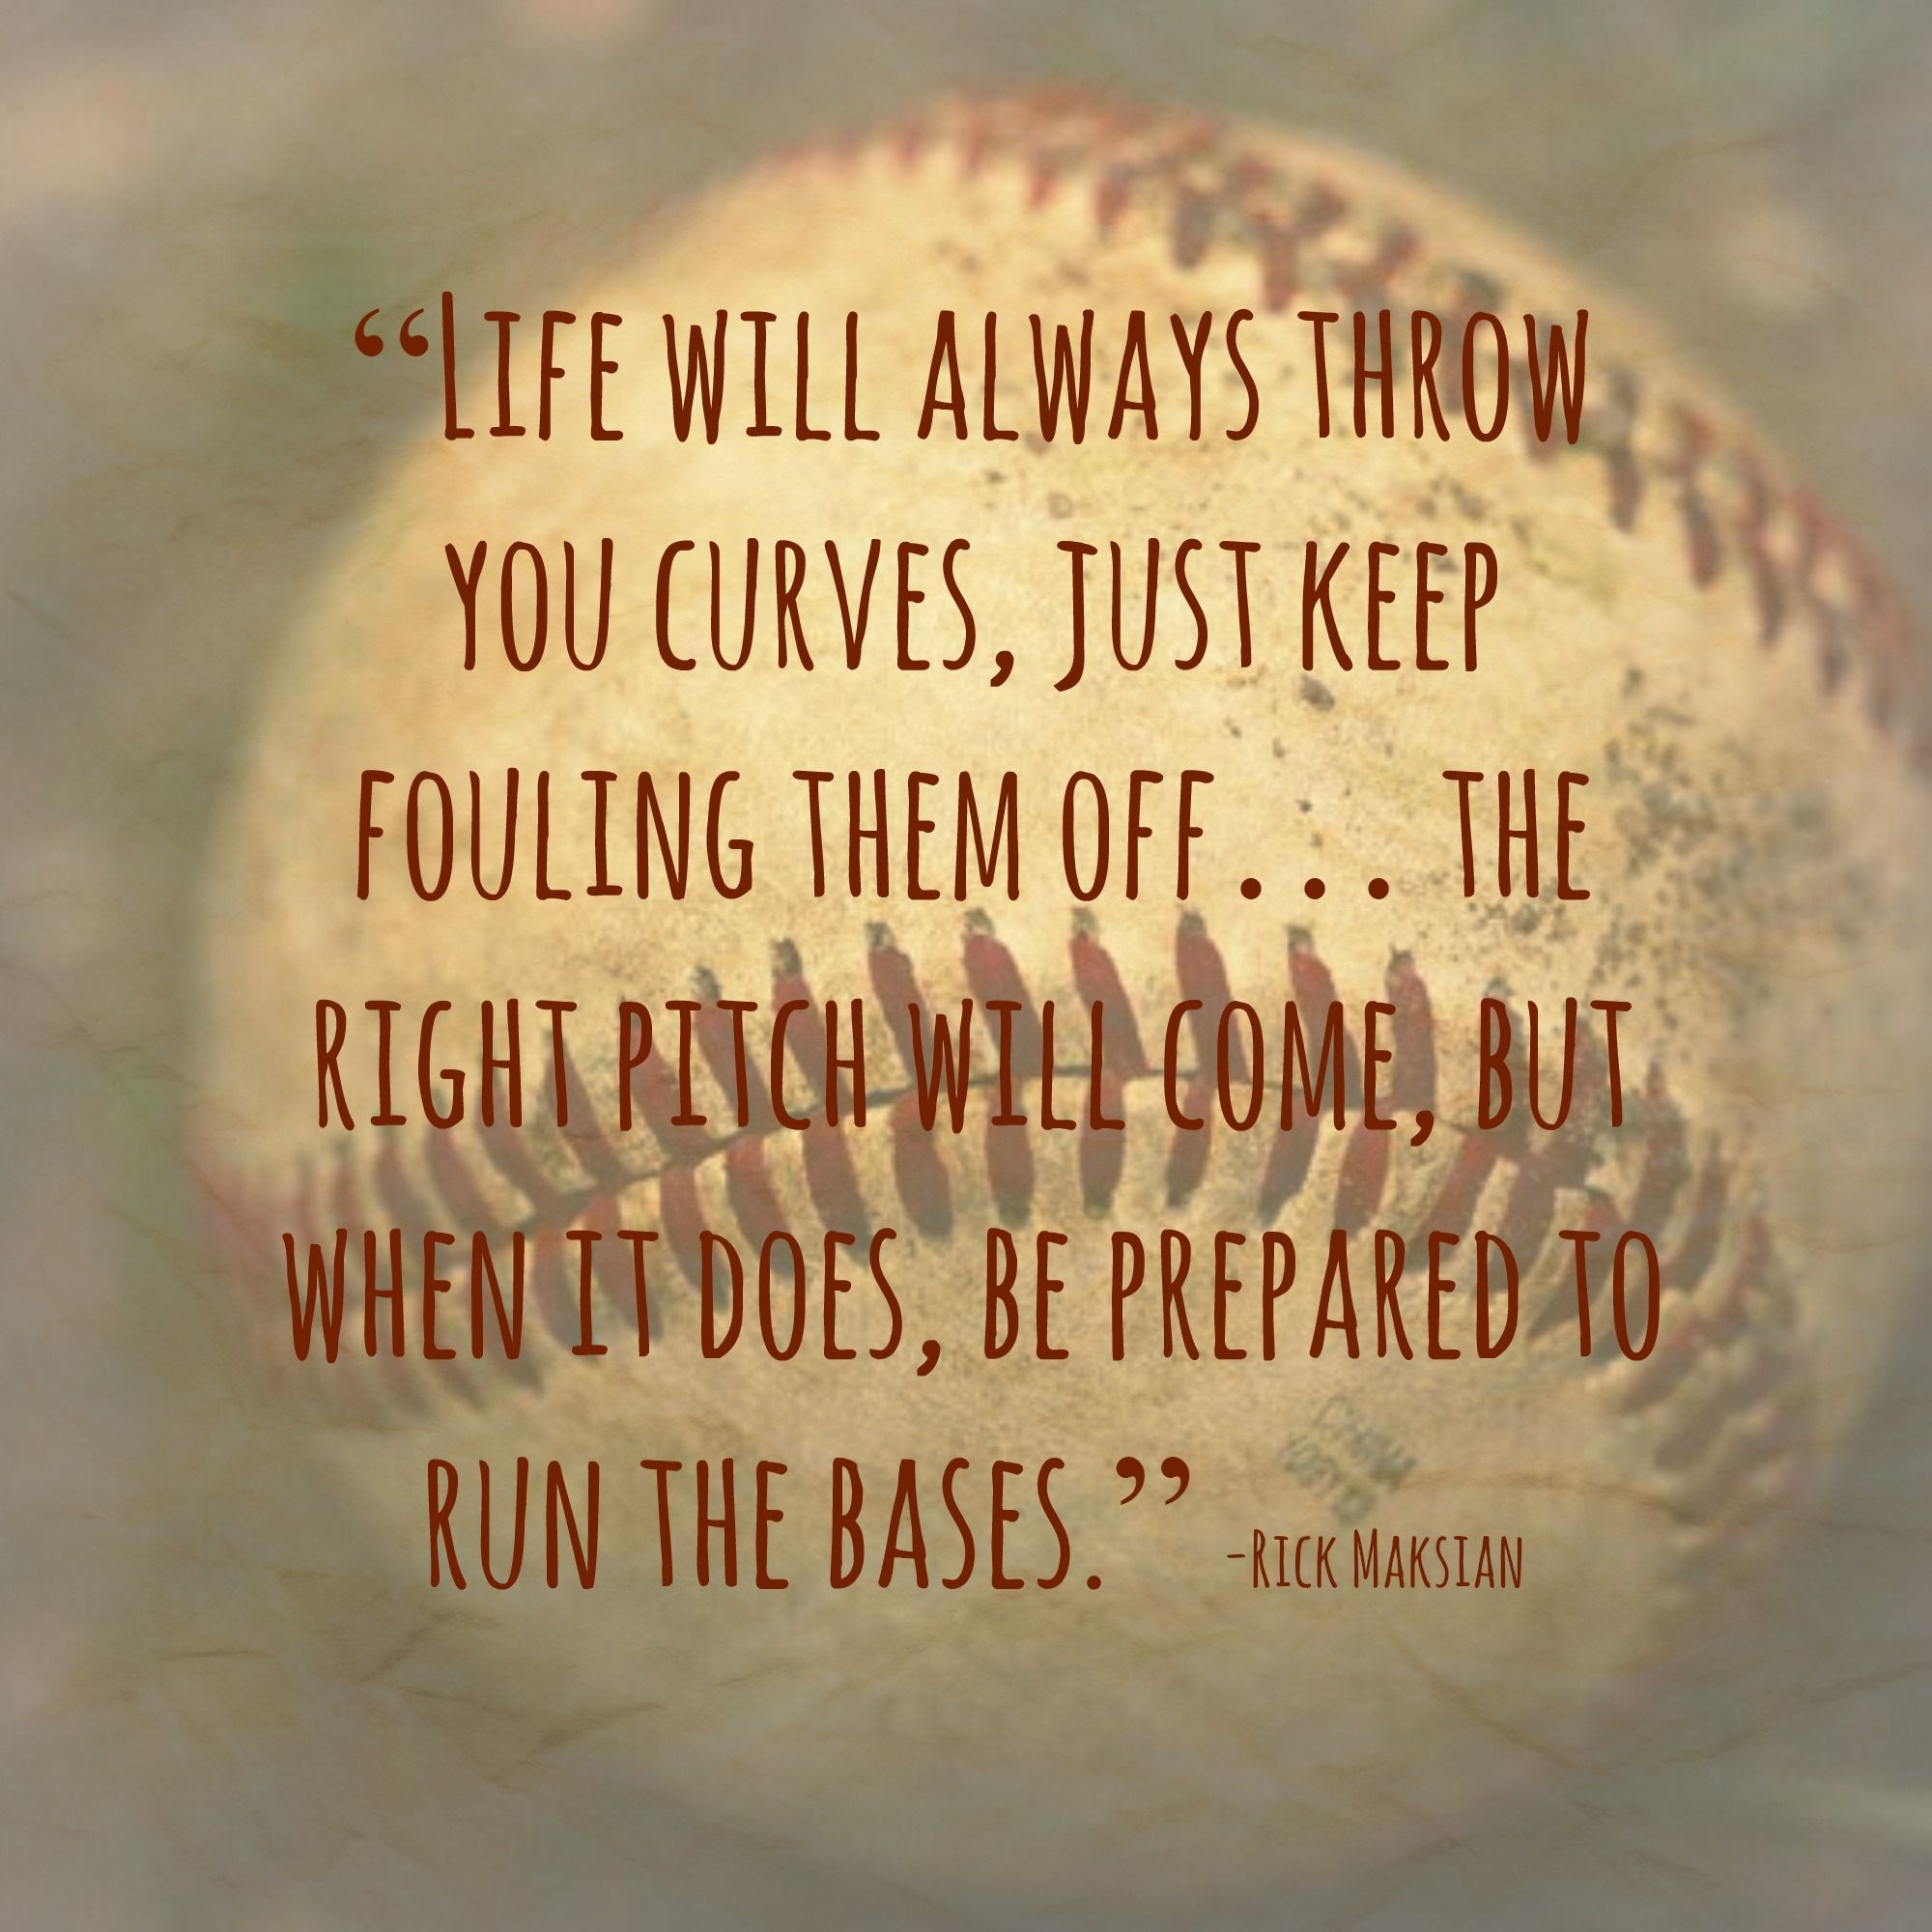 Baseball Quotes About Life Limited edition baseball shirt | Baseball Baby!!!! | Softball  Baseball Quotes About Life